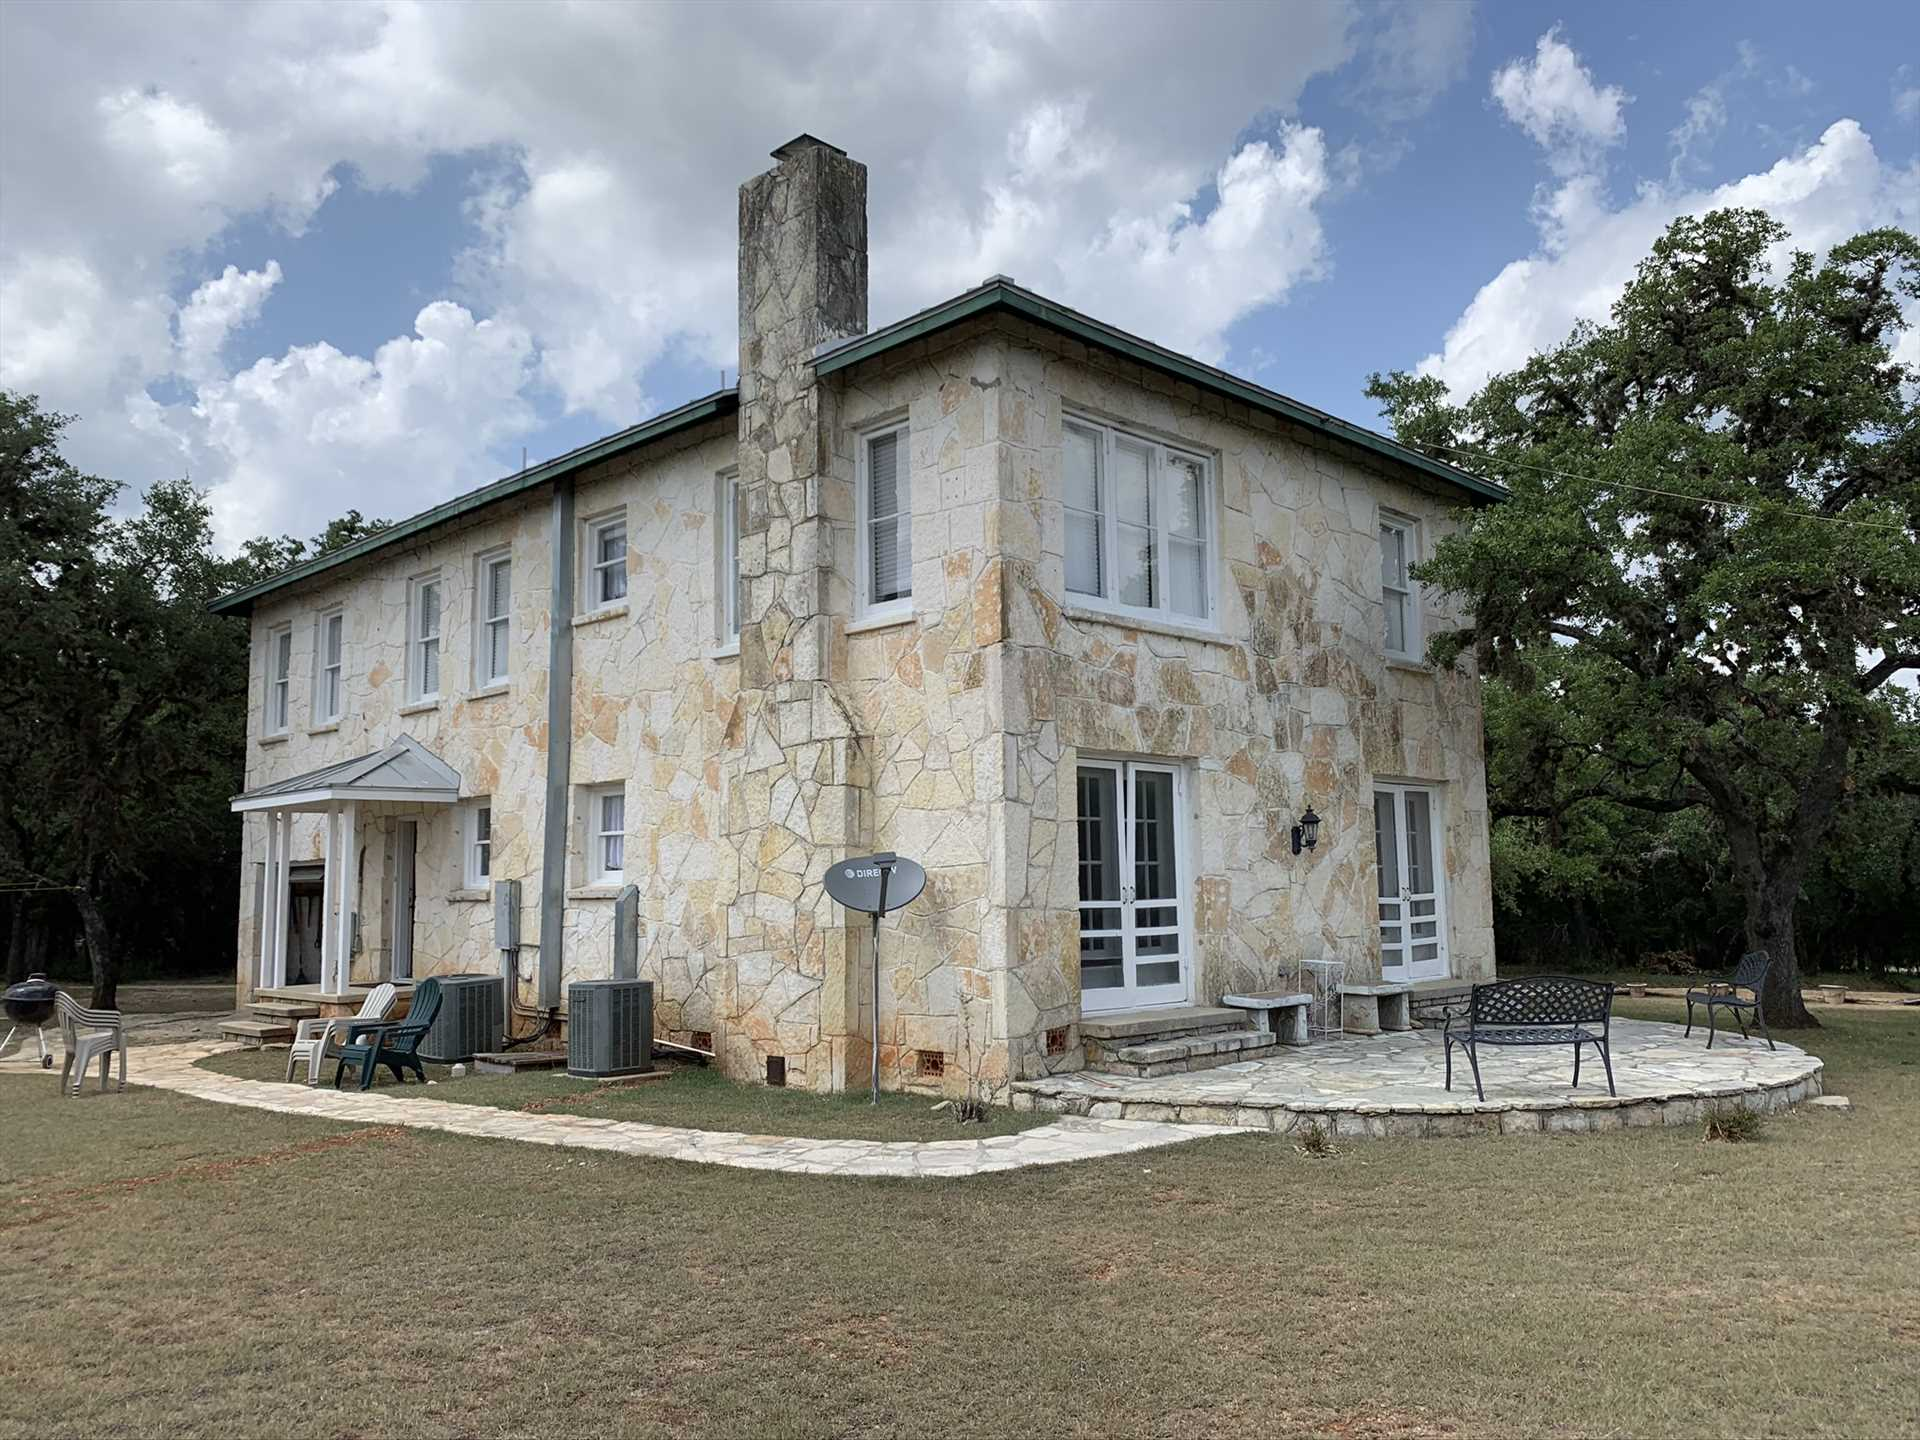 You'll have the best of town and country here-a beautiful and private rural setting that's a short drive from the town conveniences of Bandera!